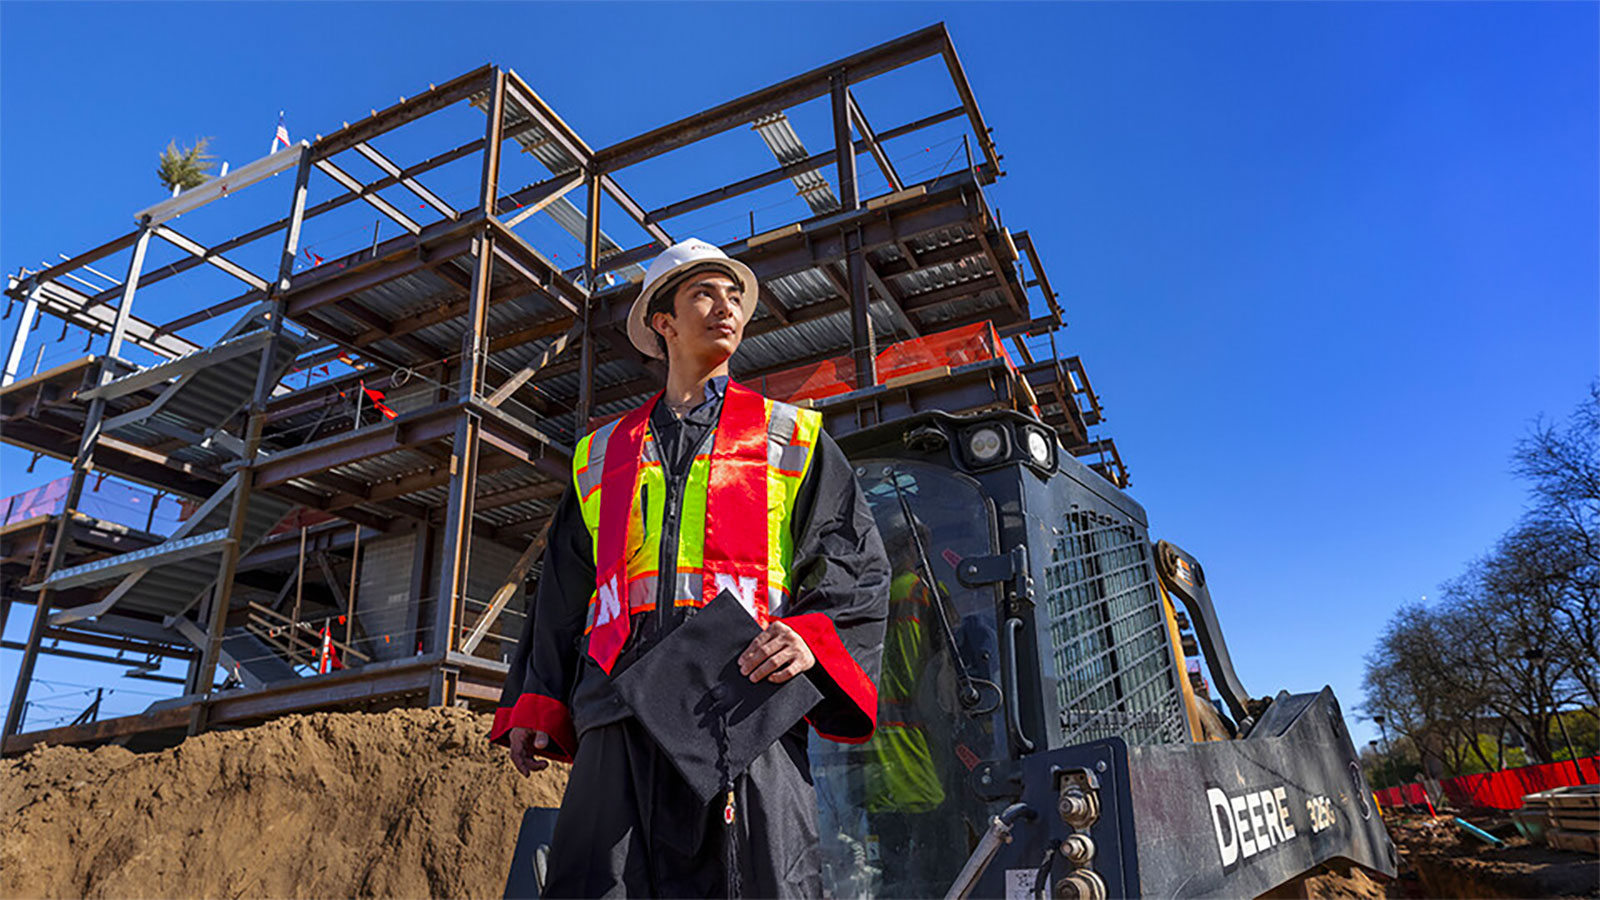 Yajyoo Shrestha, a graduating senior in civil engineering, stands before the construction site of the new College of Education and Human Sciences building on City Campus.